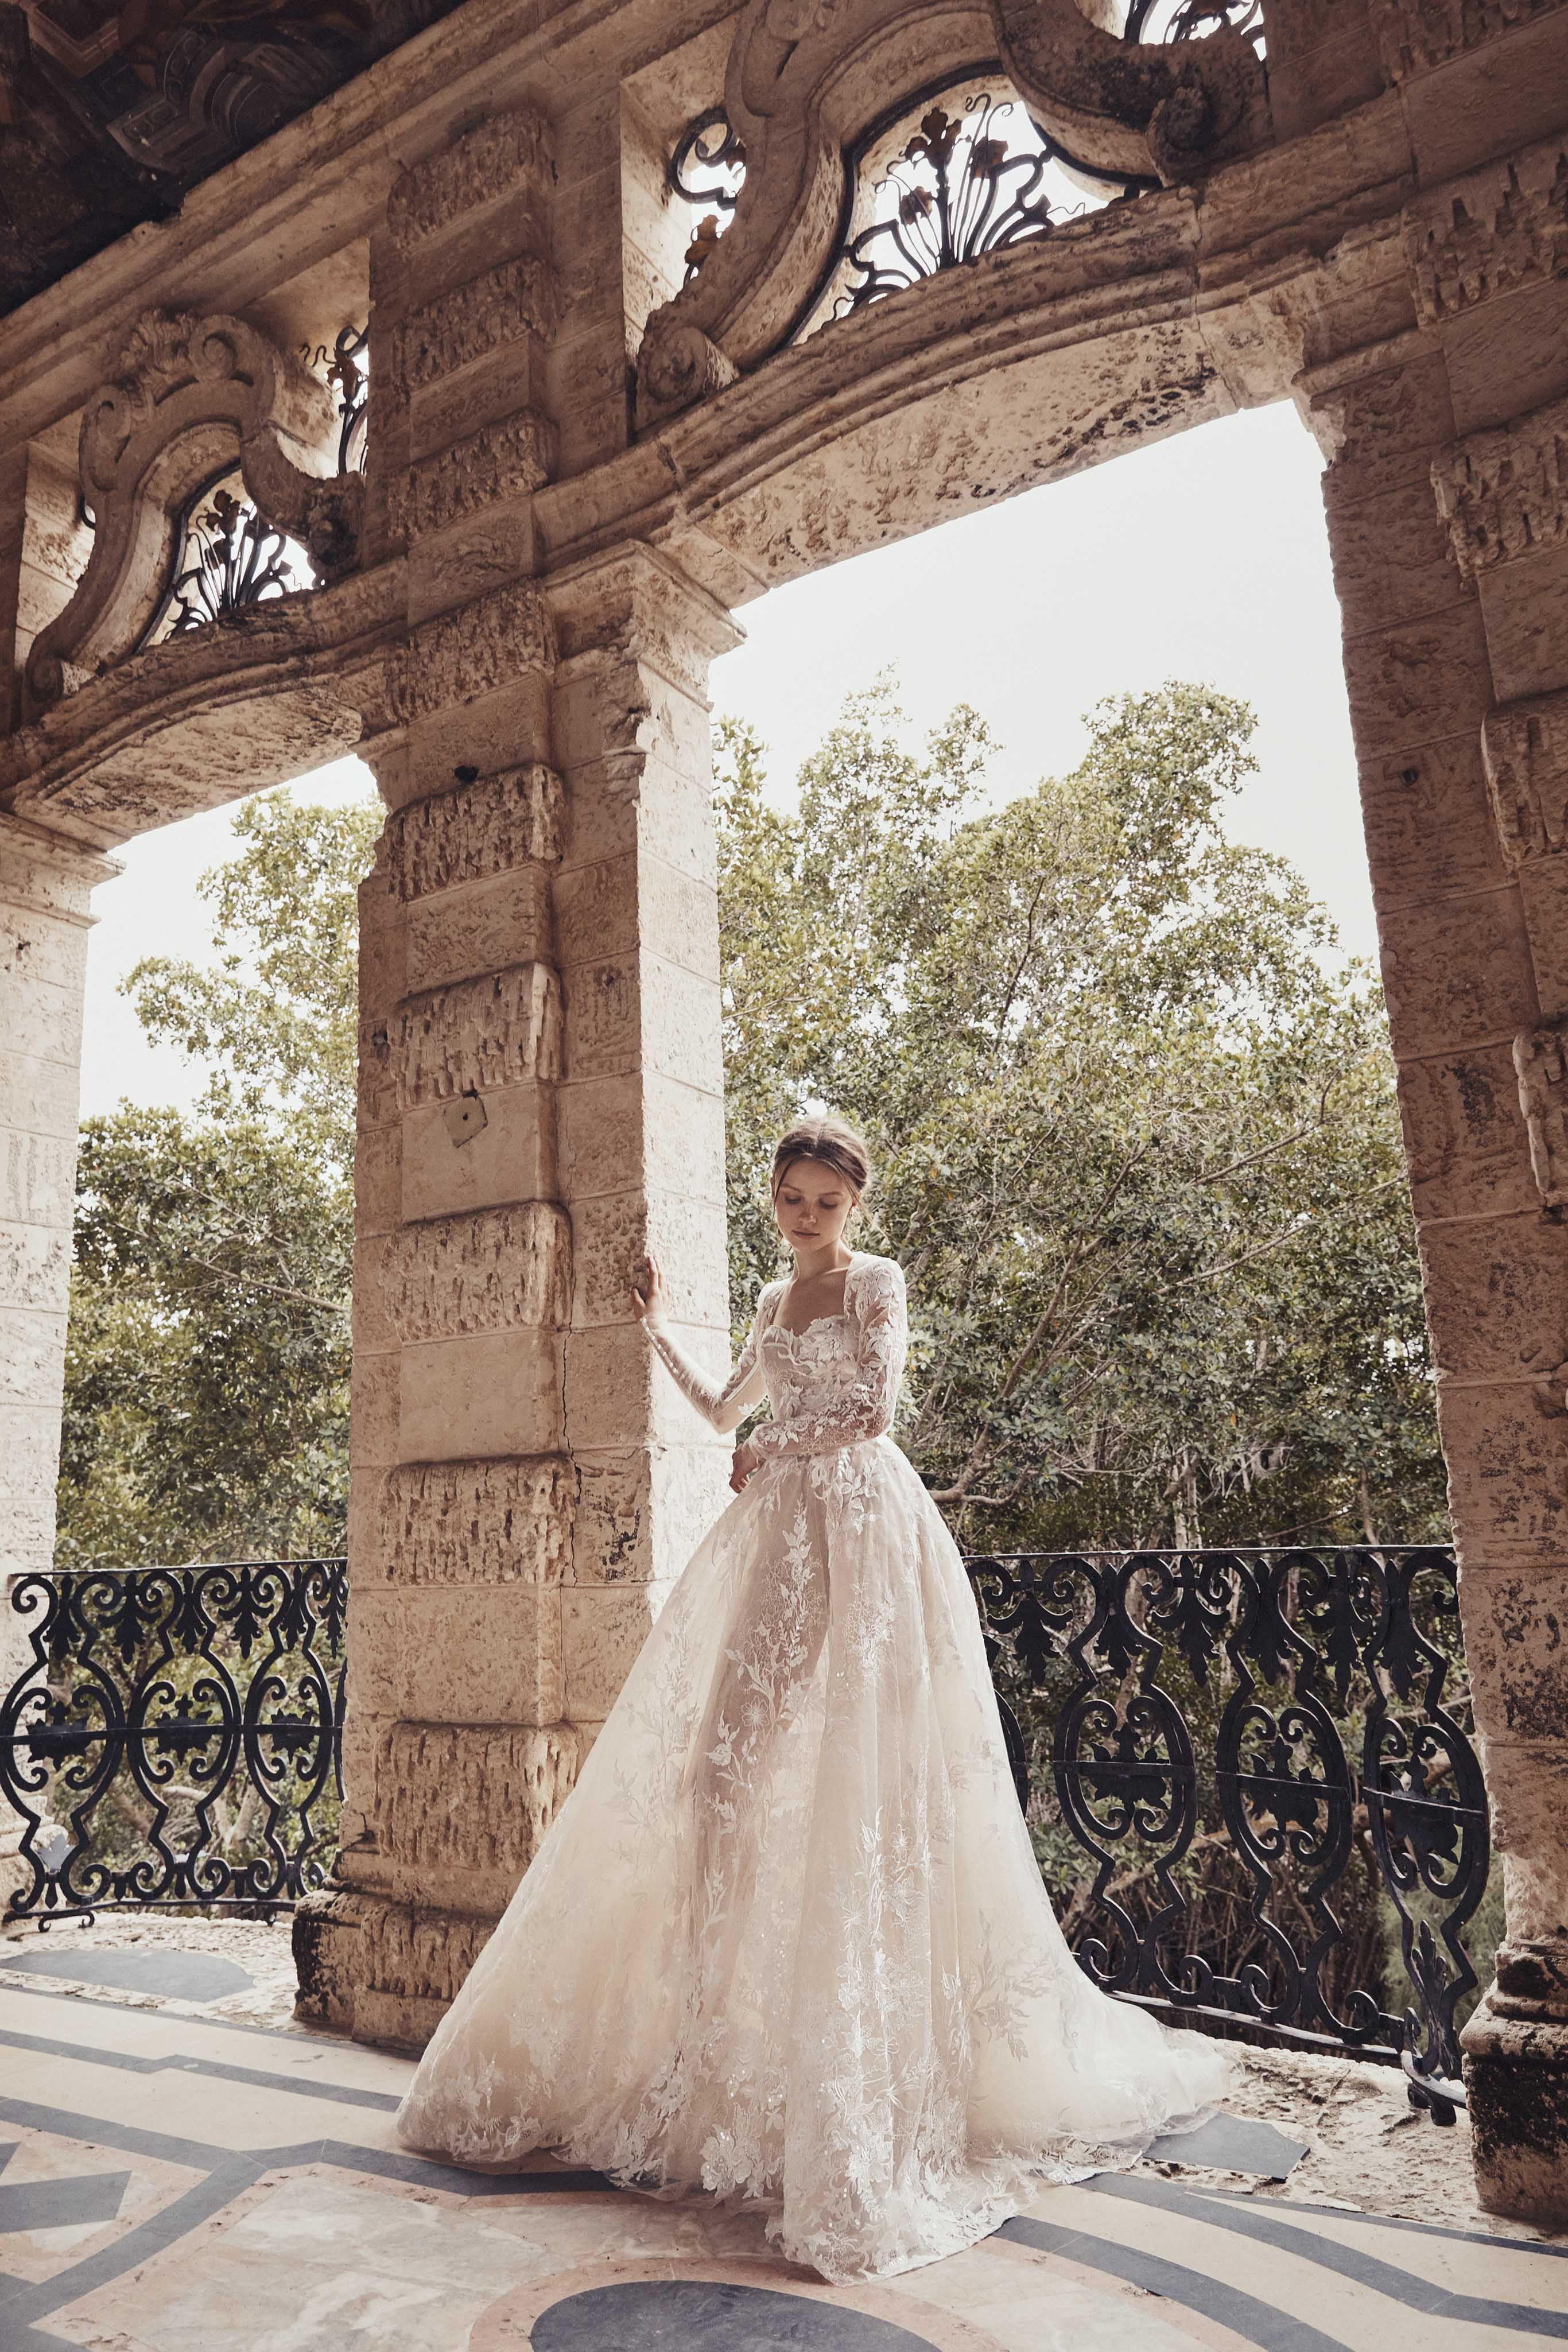 Zerchoo Fashion - These Are The Must-Have Bridal Trends of Spring 2020